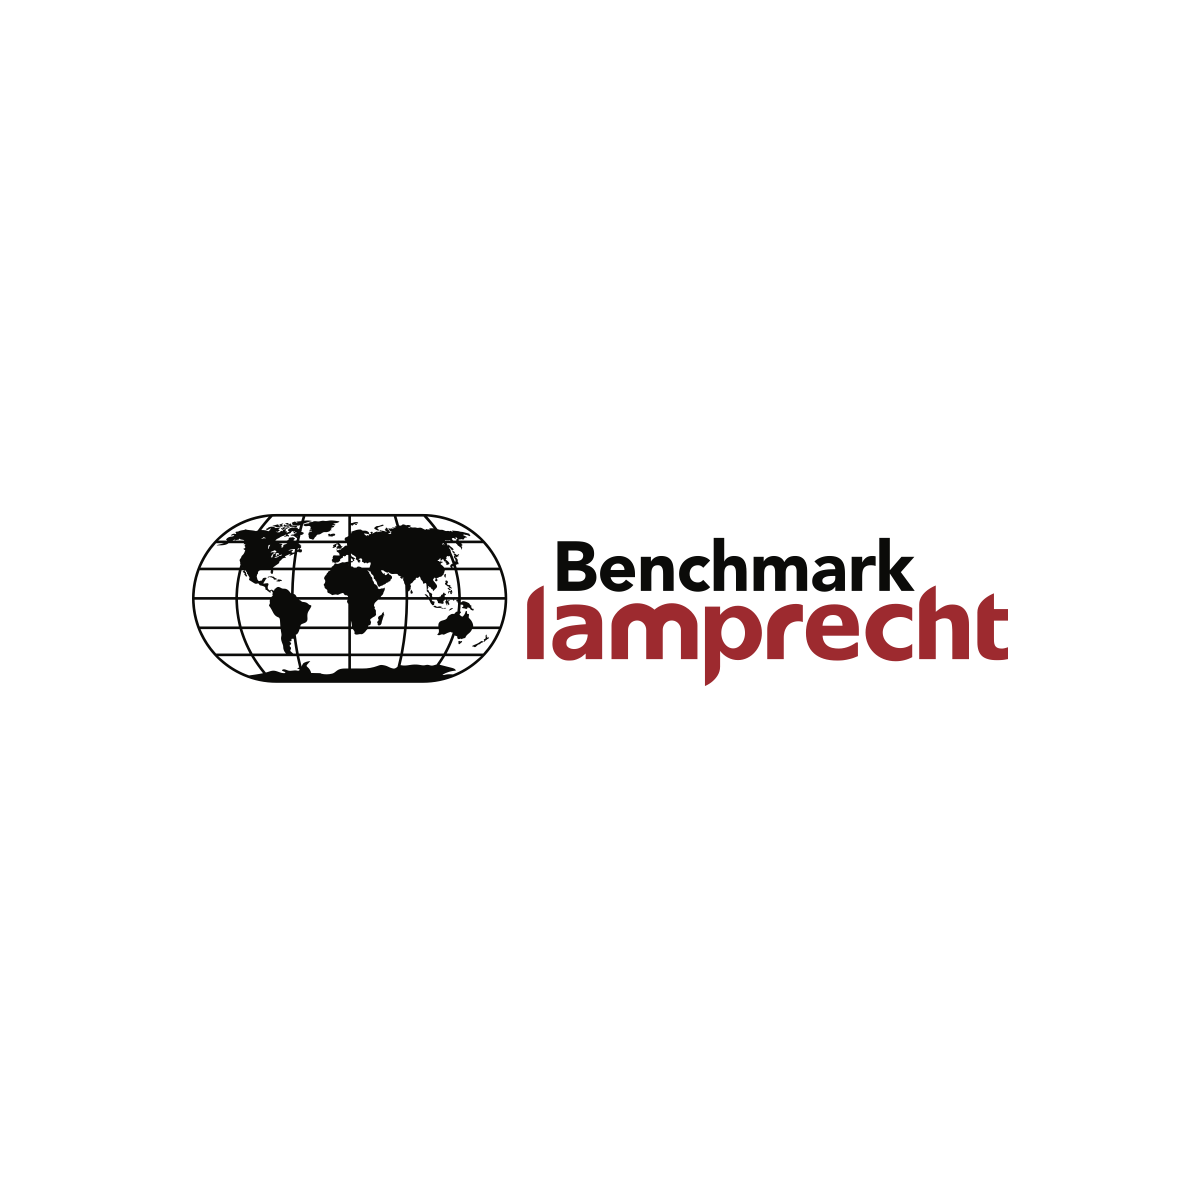 Logo for represent American Lamprecht merger with Benchmark Worlwide